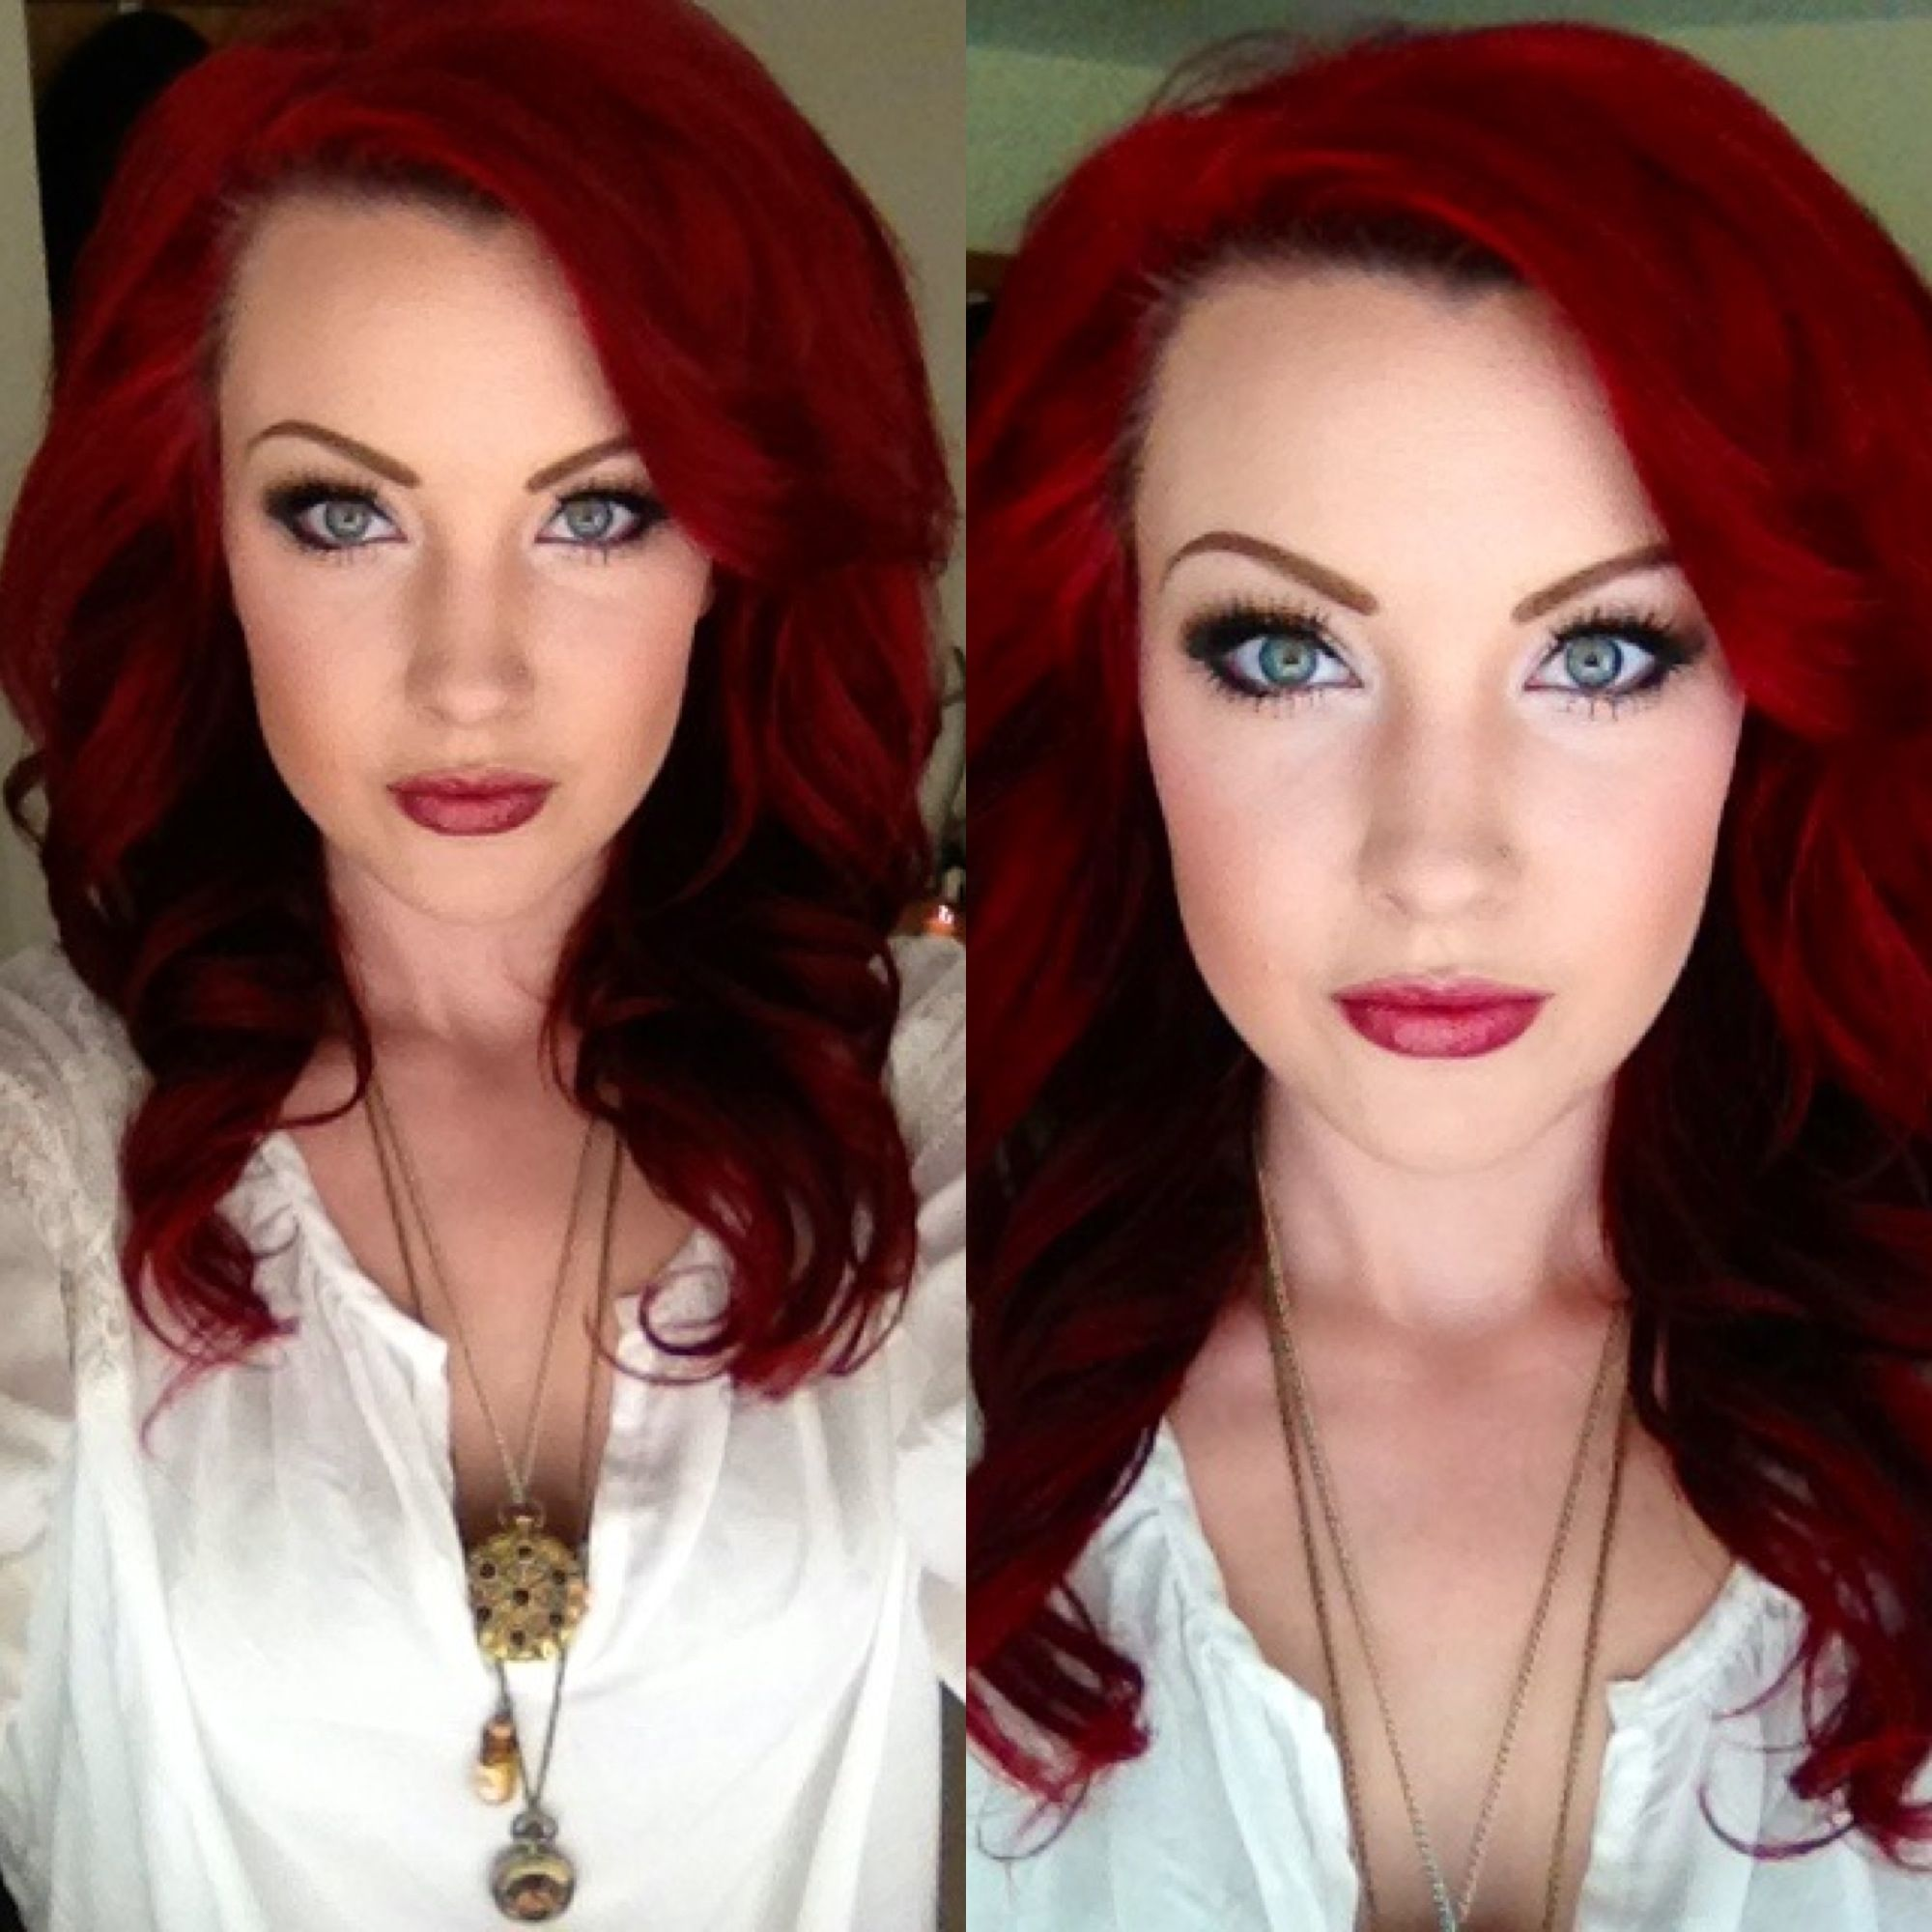 Pravana Vivids Mac Makeup Red Hair Color Red Ombre Hair Red Hair